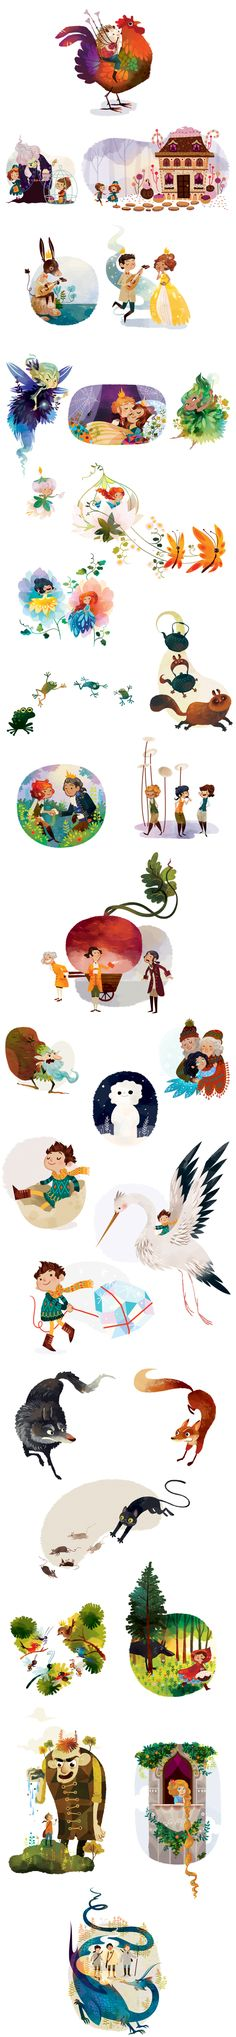 Fairy Tales on Behance